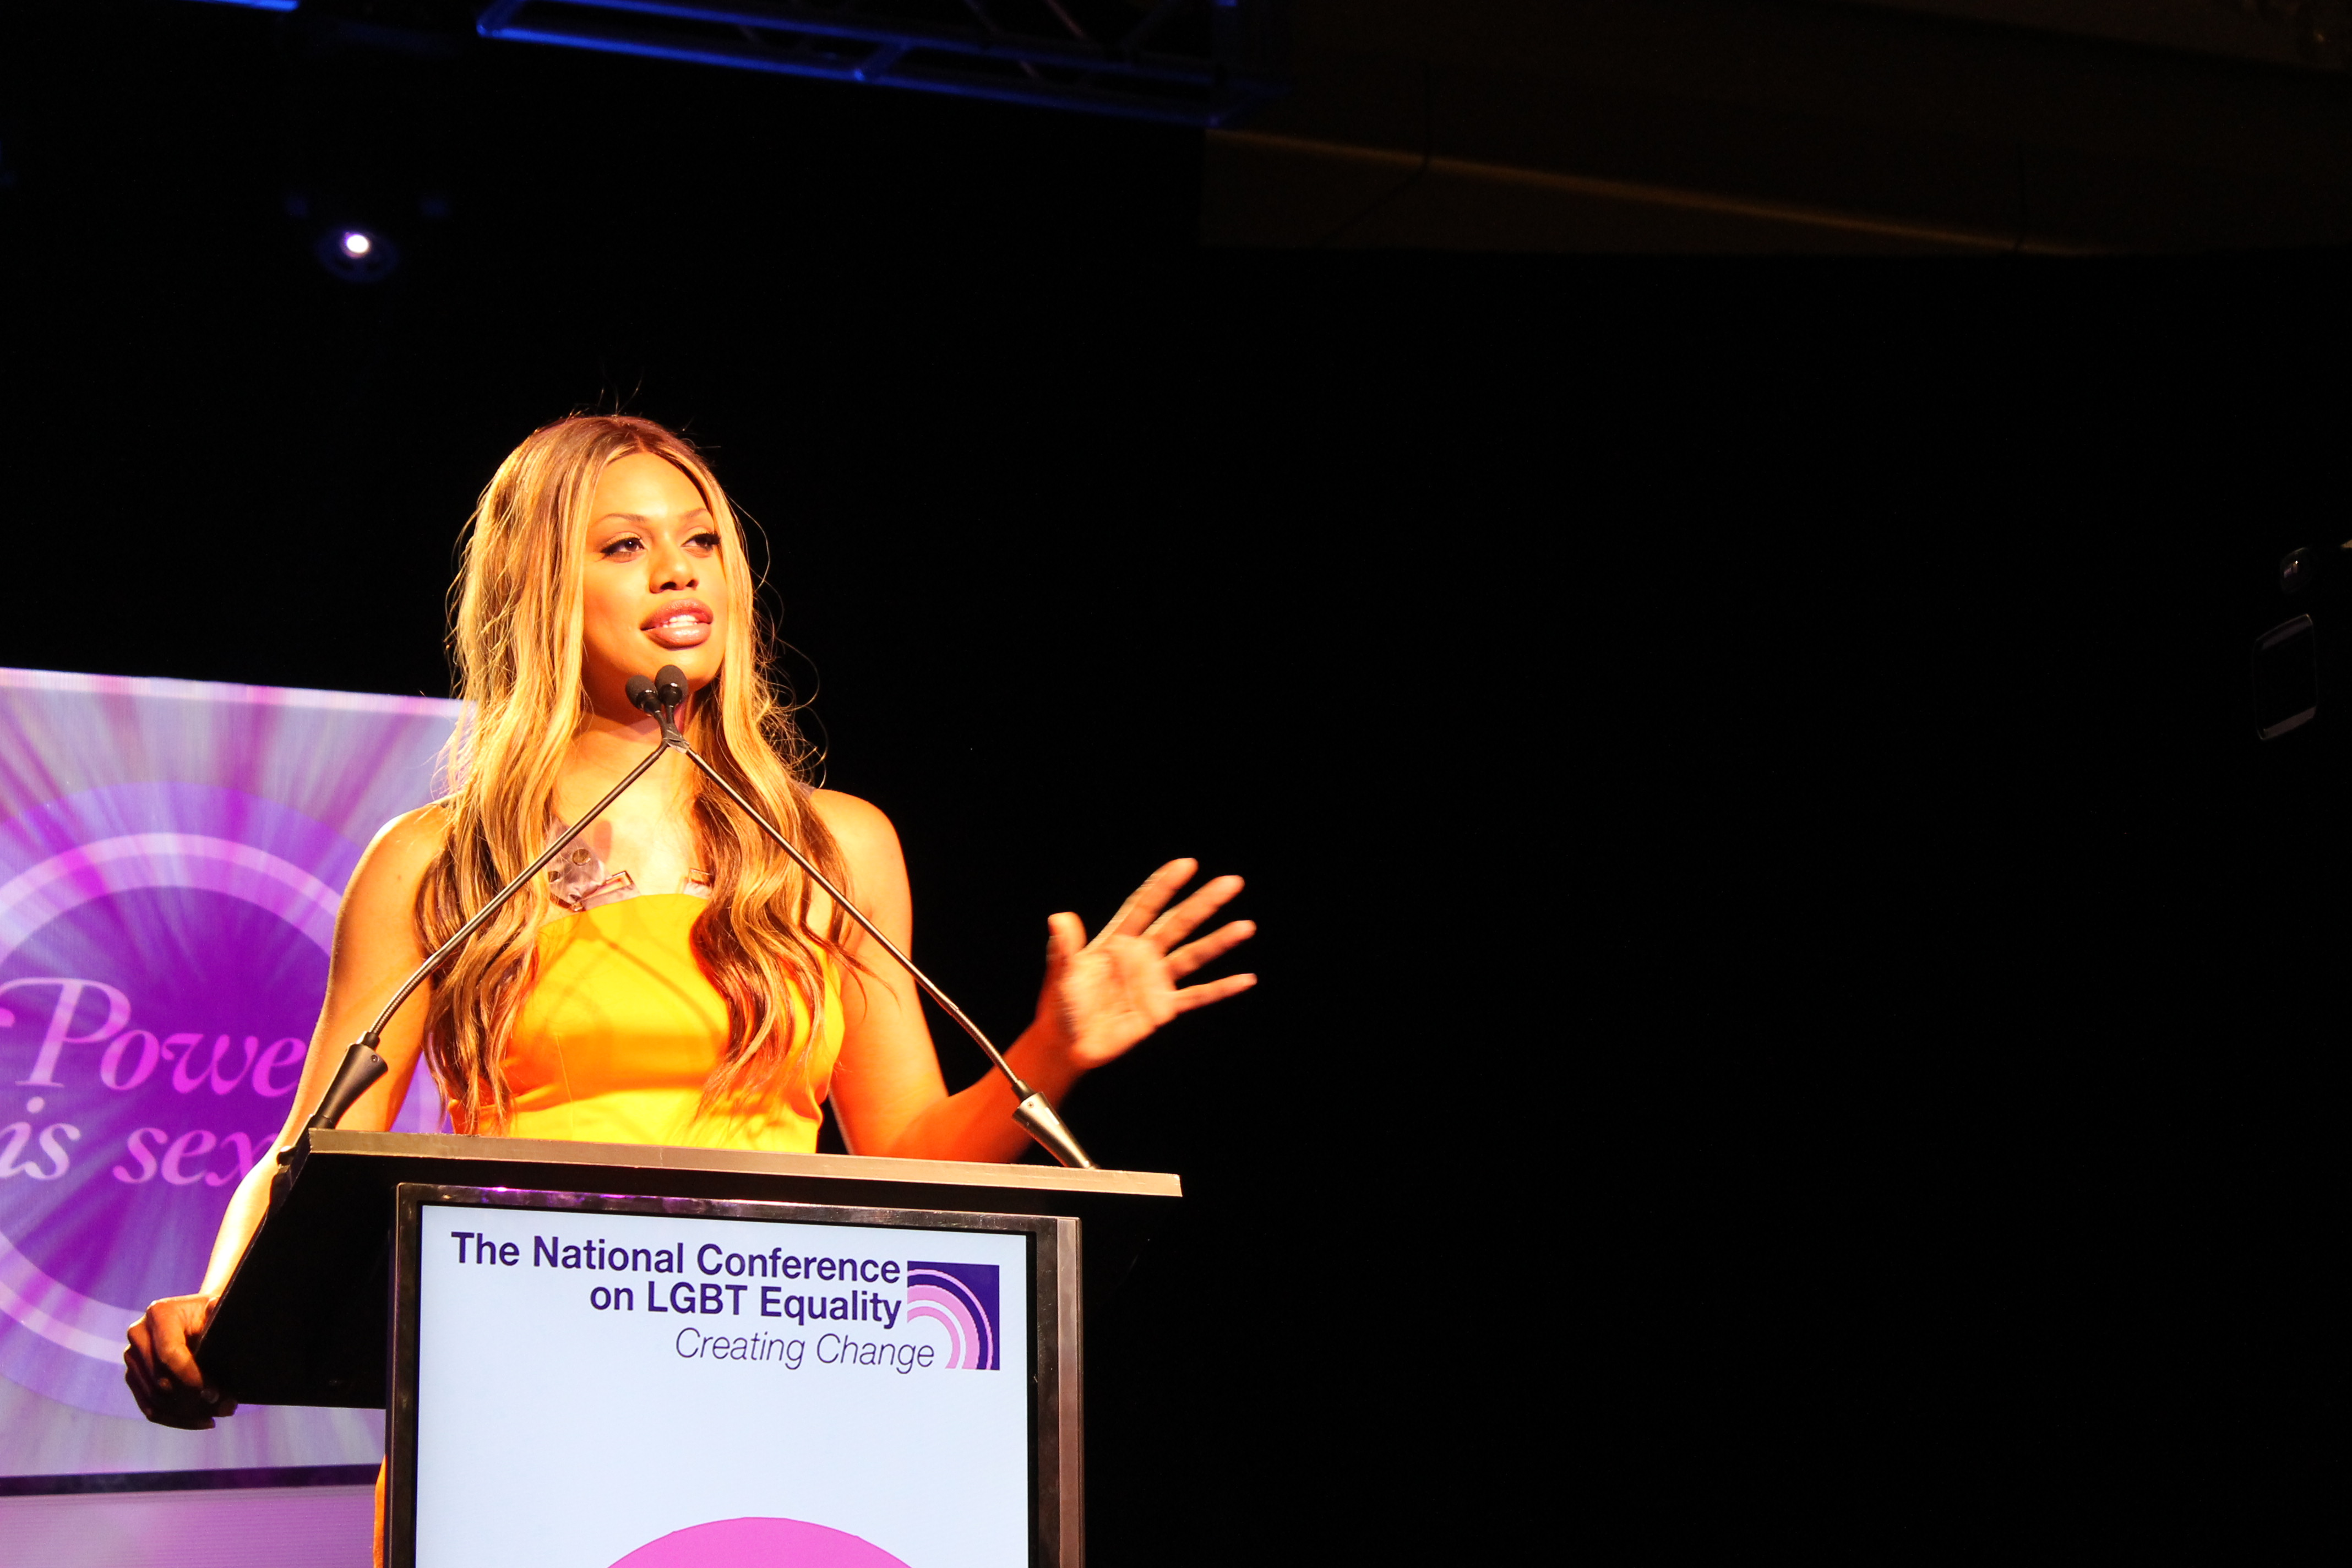 Laverne Cox: Love for trans community will end injustices she, others face